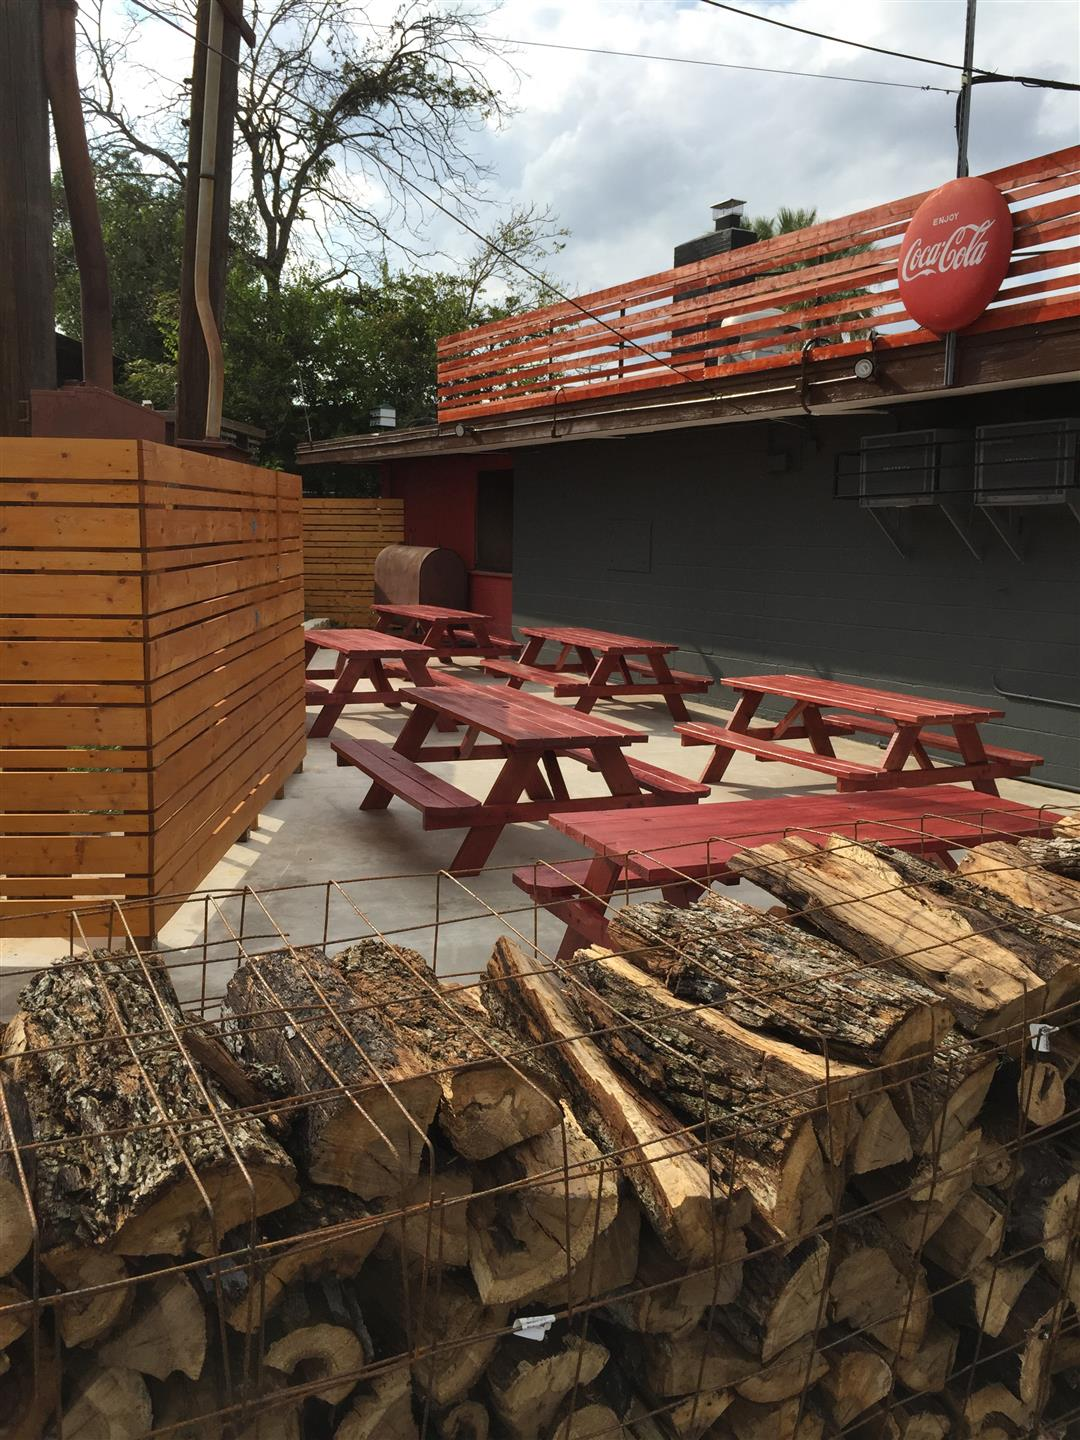 Outdoor seating area behind the BBQ pit with benches and stacks of firewood